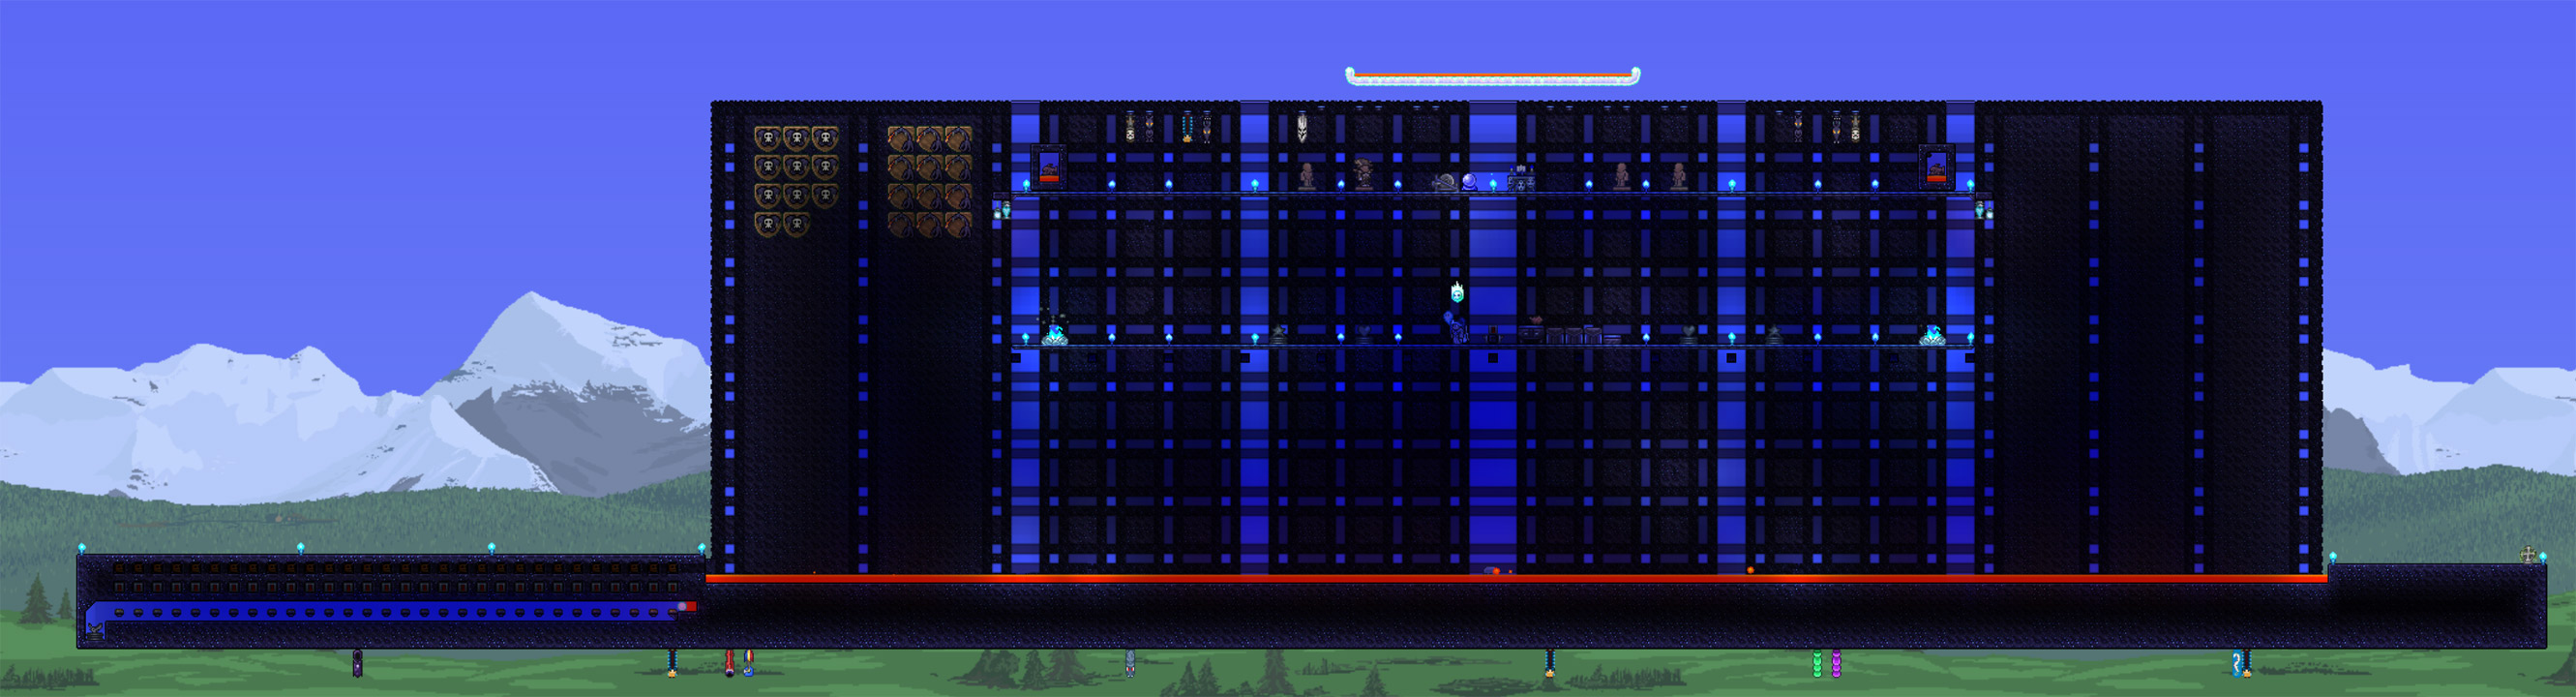 Oddgirl S Builds Page 2 Terraria Community Forums